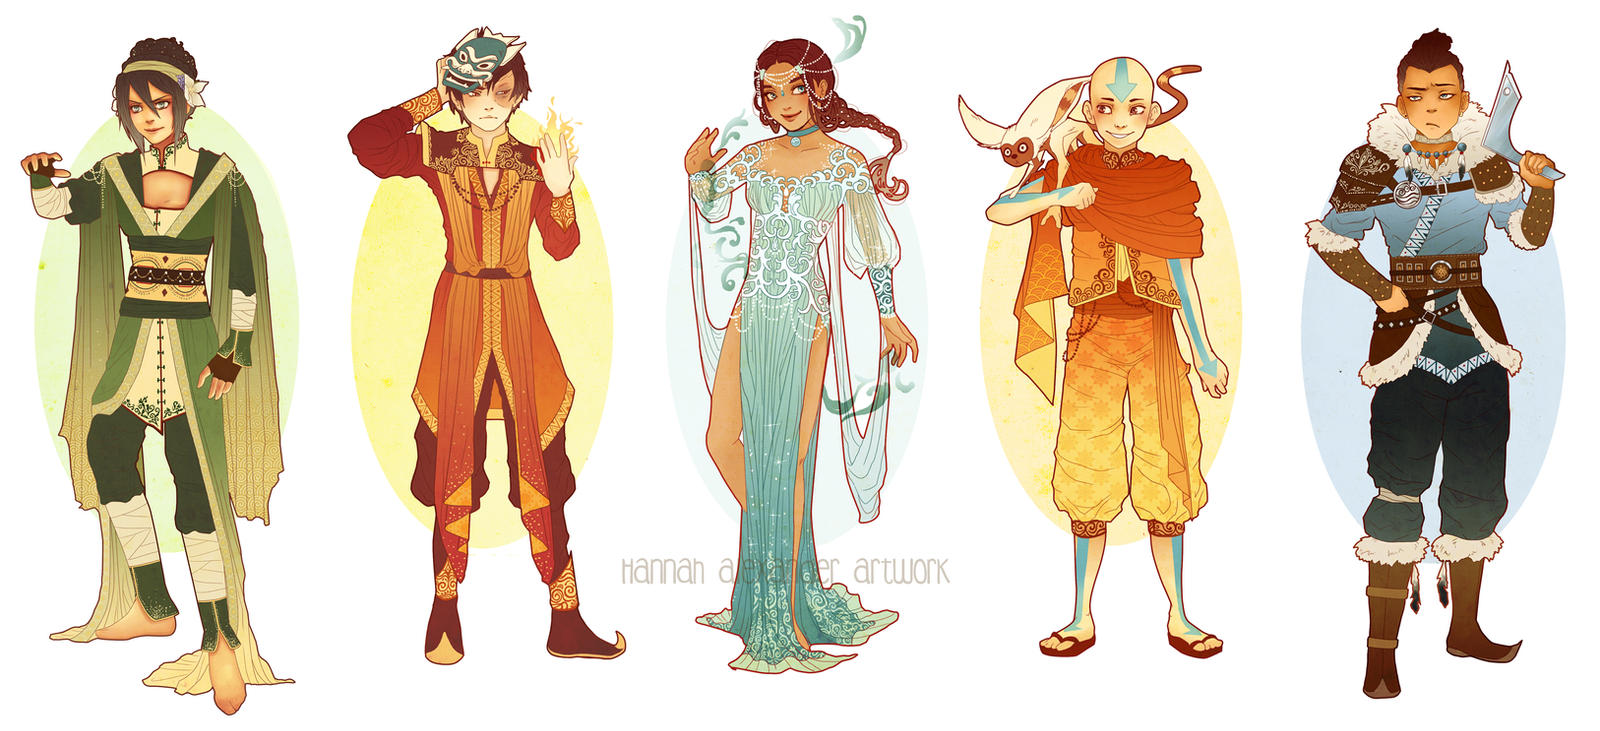 Updated: Avatar Art Nouveau Costume Designs by Hannah-Alexander